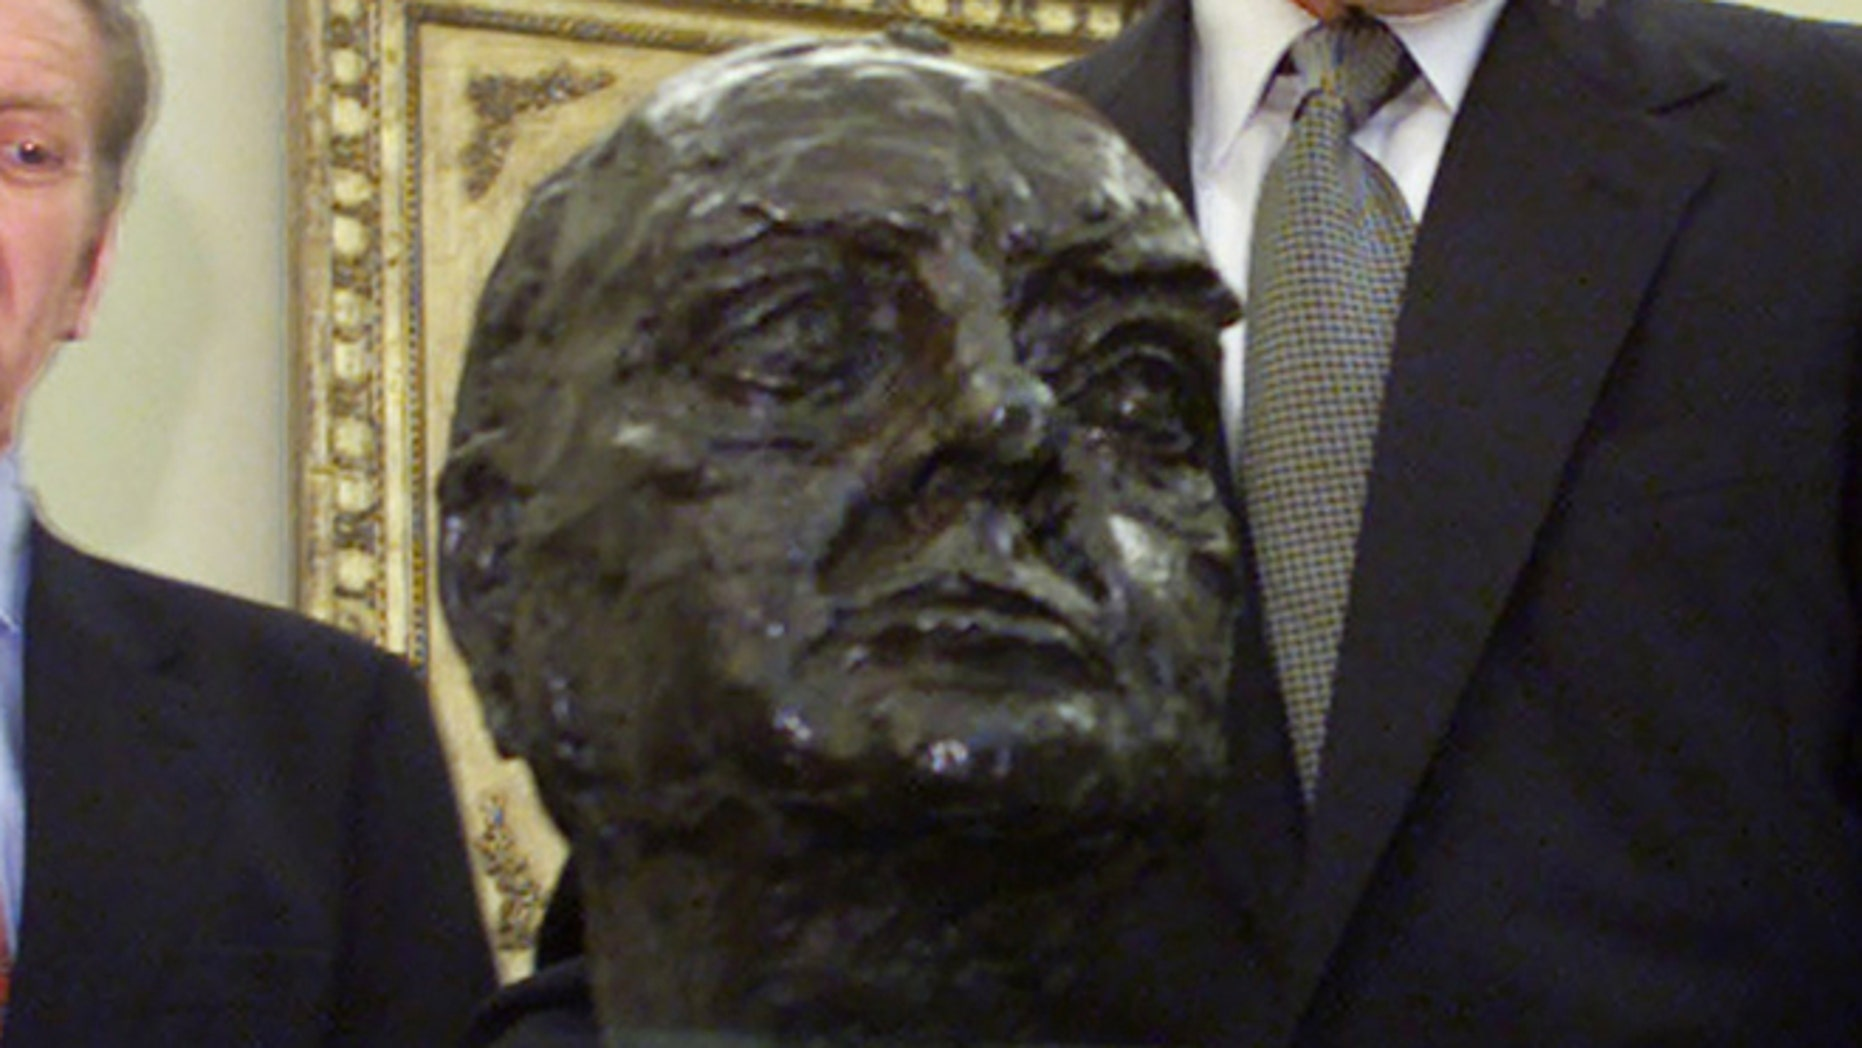 FILE: In this July 16, 2001 photo, a bust of Winston Churchill is seen in the Oval Office of the White House.